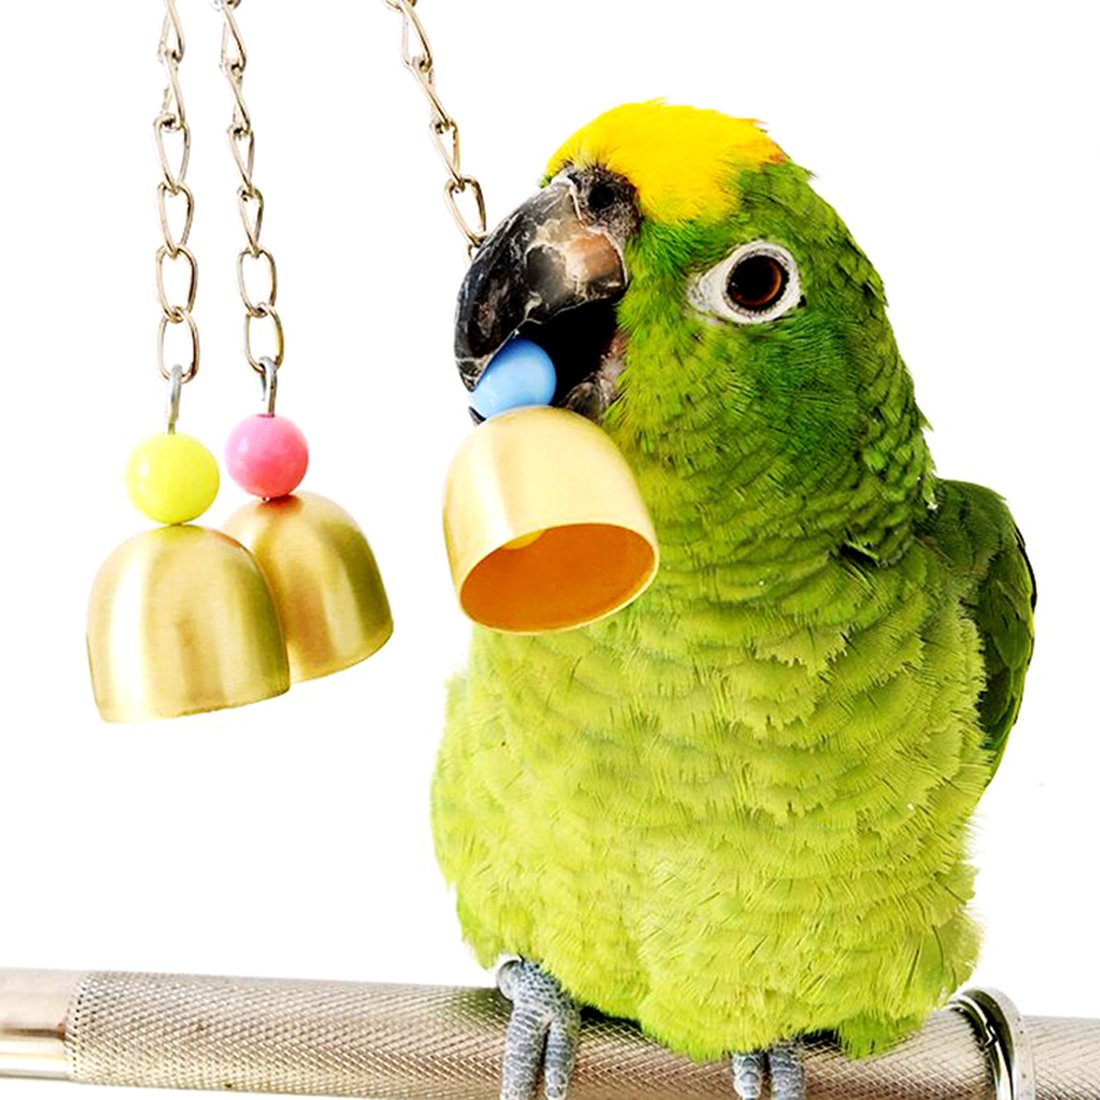 BWOGUE 5pcs Bird Parrot Toys Hanging Bell Pet Bird Cage Hammock Swing Toy Hanging Toy for Small Parakeets Cockatiels…